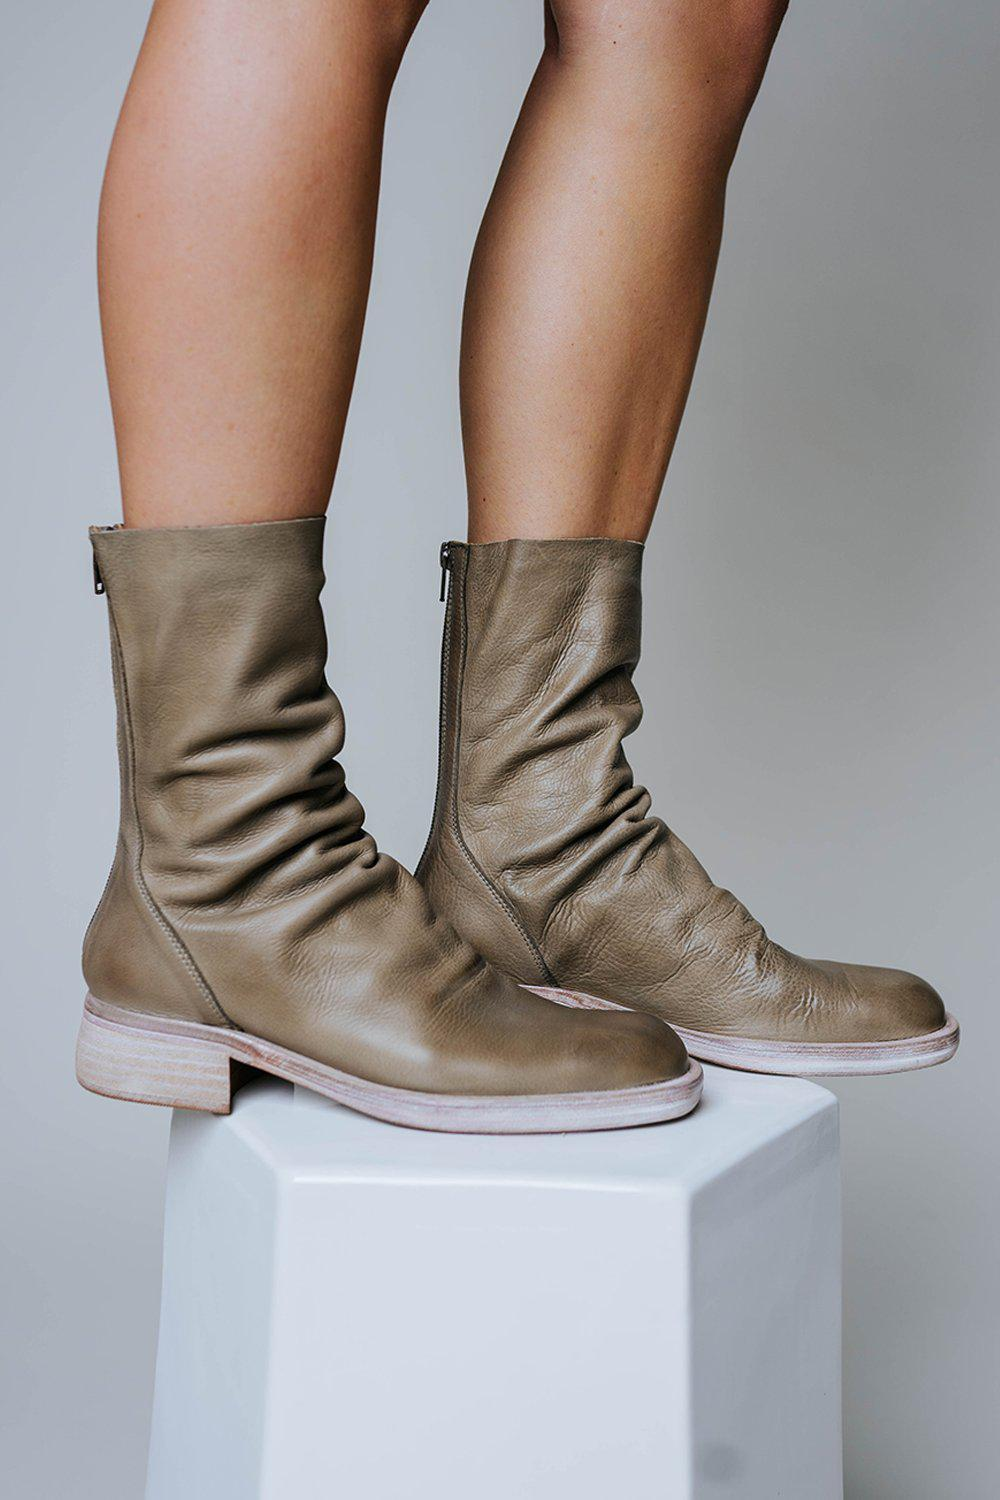 Free People Sutton Tight Slouch Boot in Taupe, cladandcloth, n/a.